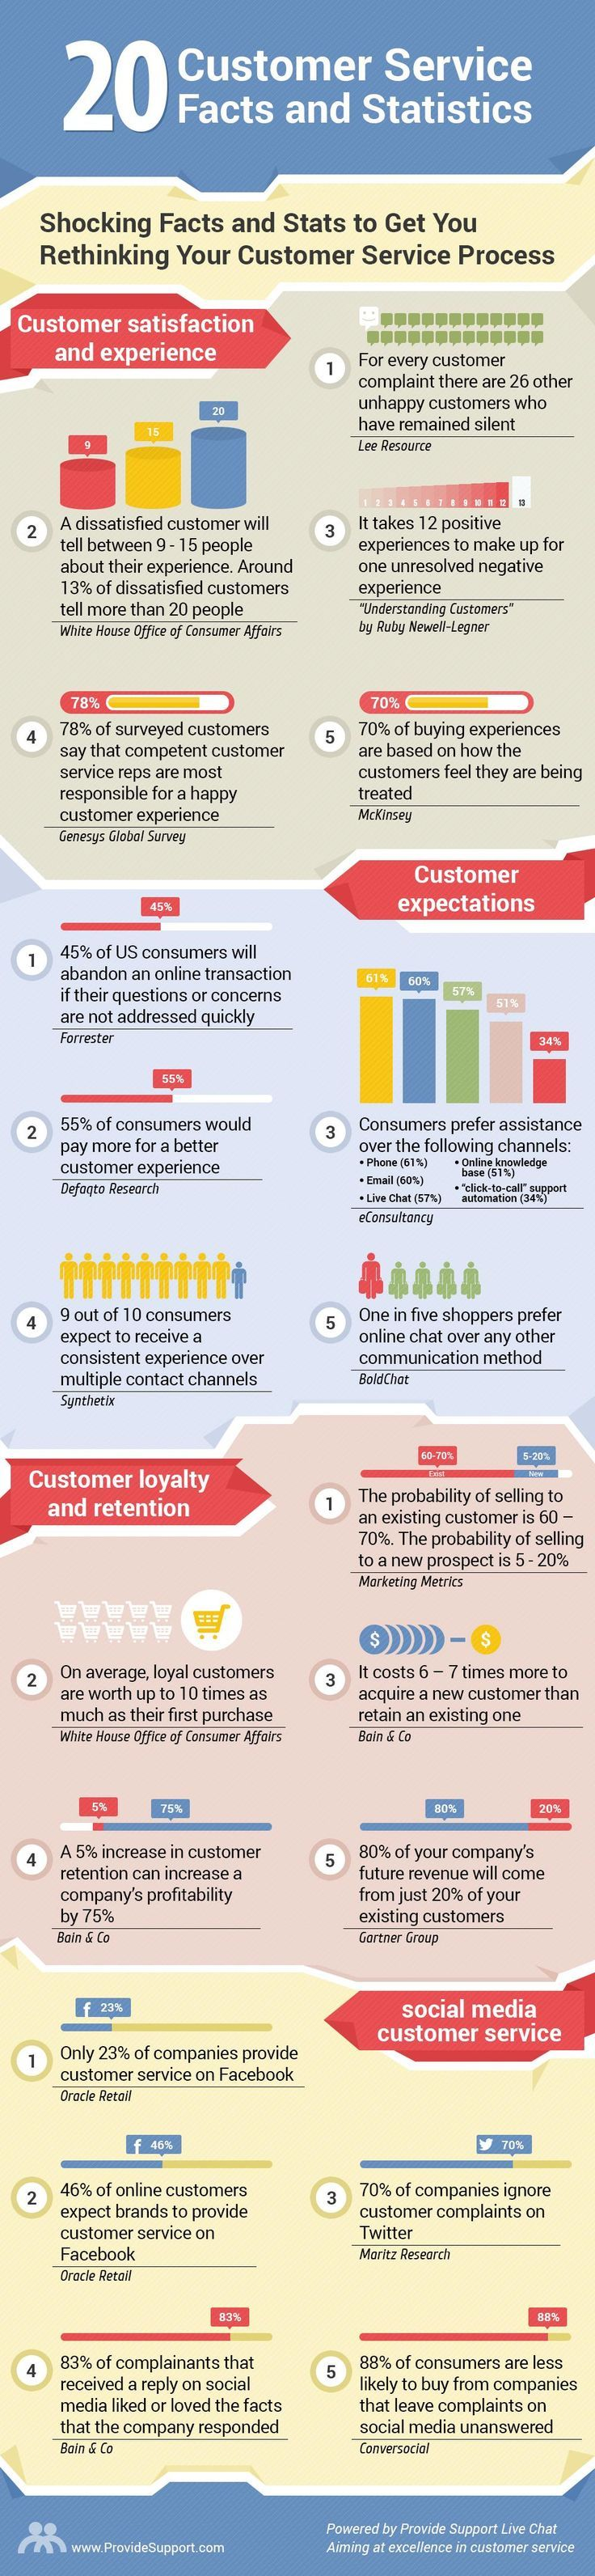 20 Shocking Customer Service Facts and Stats (Infographic